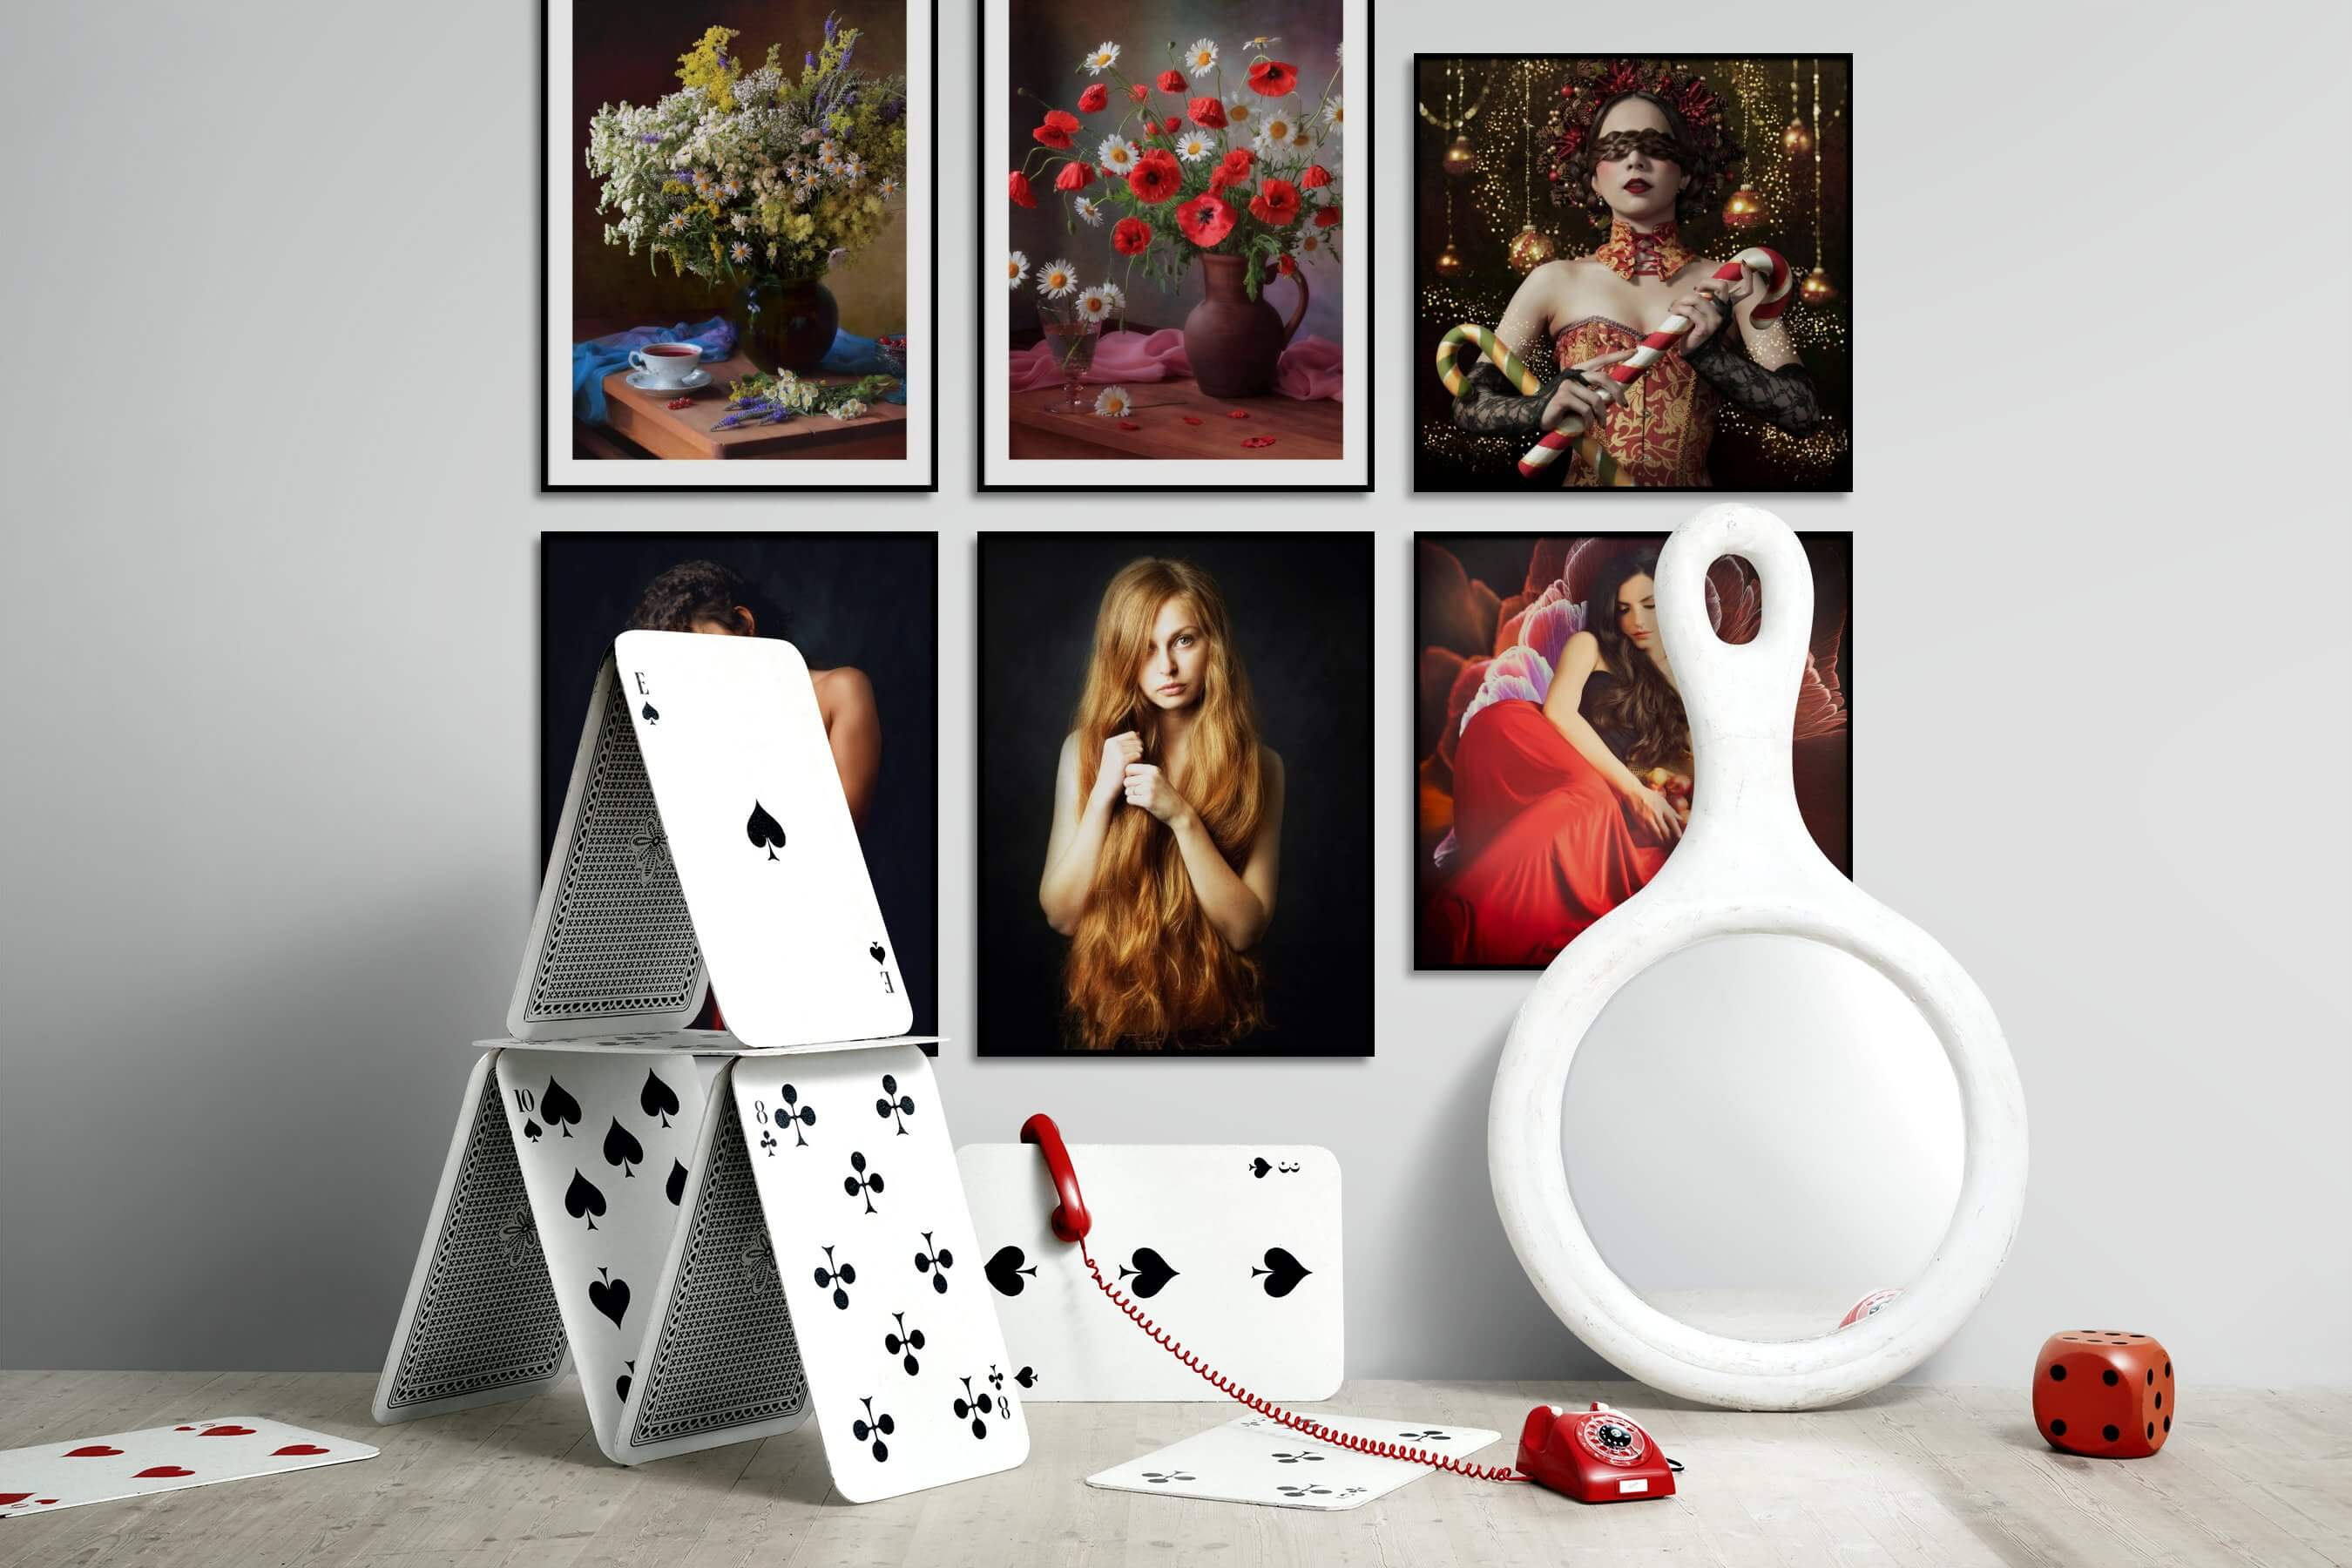 Gallery wall idea with six framed pictures arranged on a wall depicting Flowers & Plants, Vintage, Fashion & Beauty, Dark Tones, and Artsy